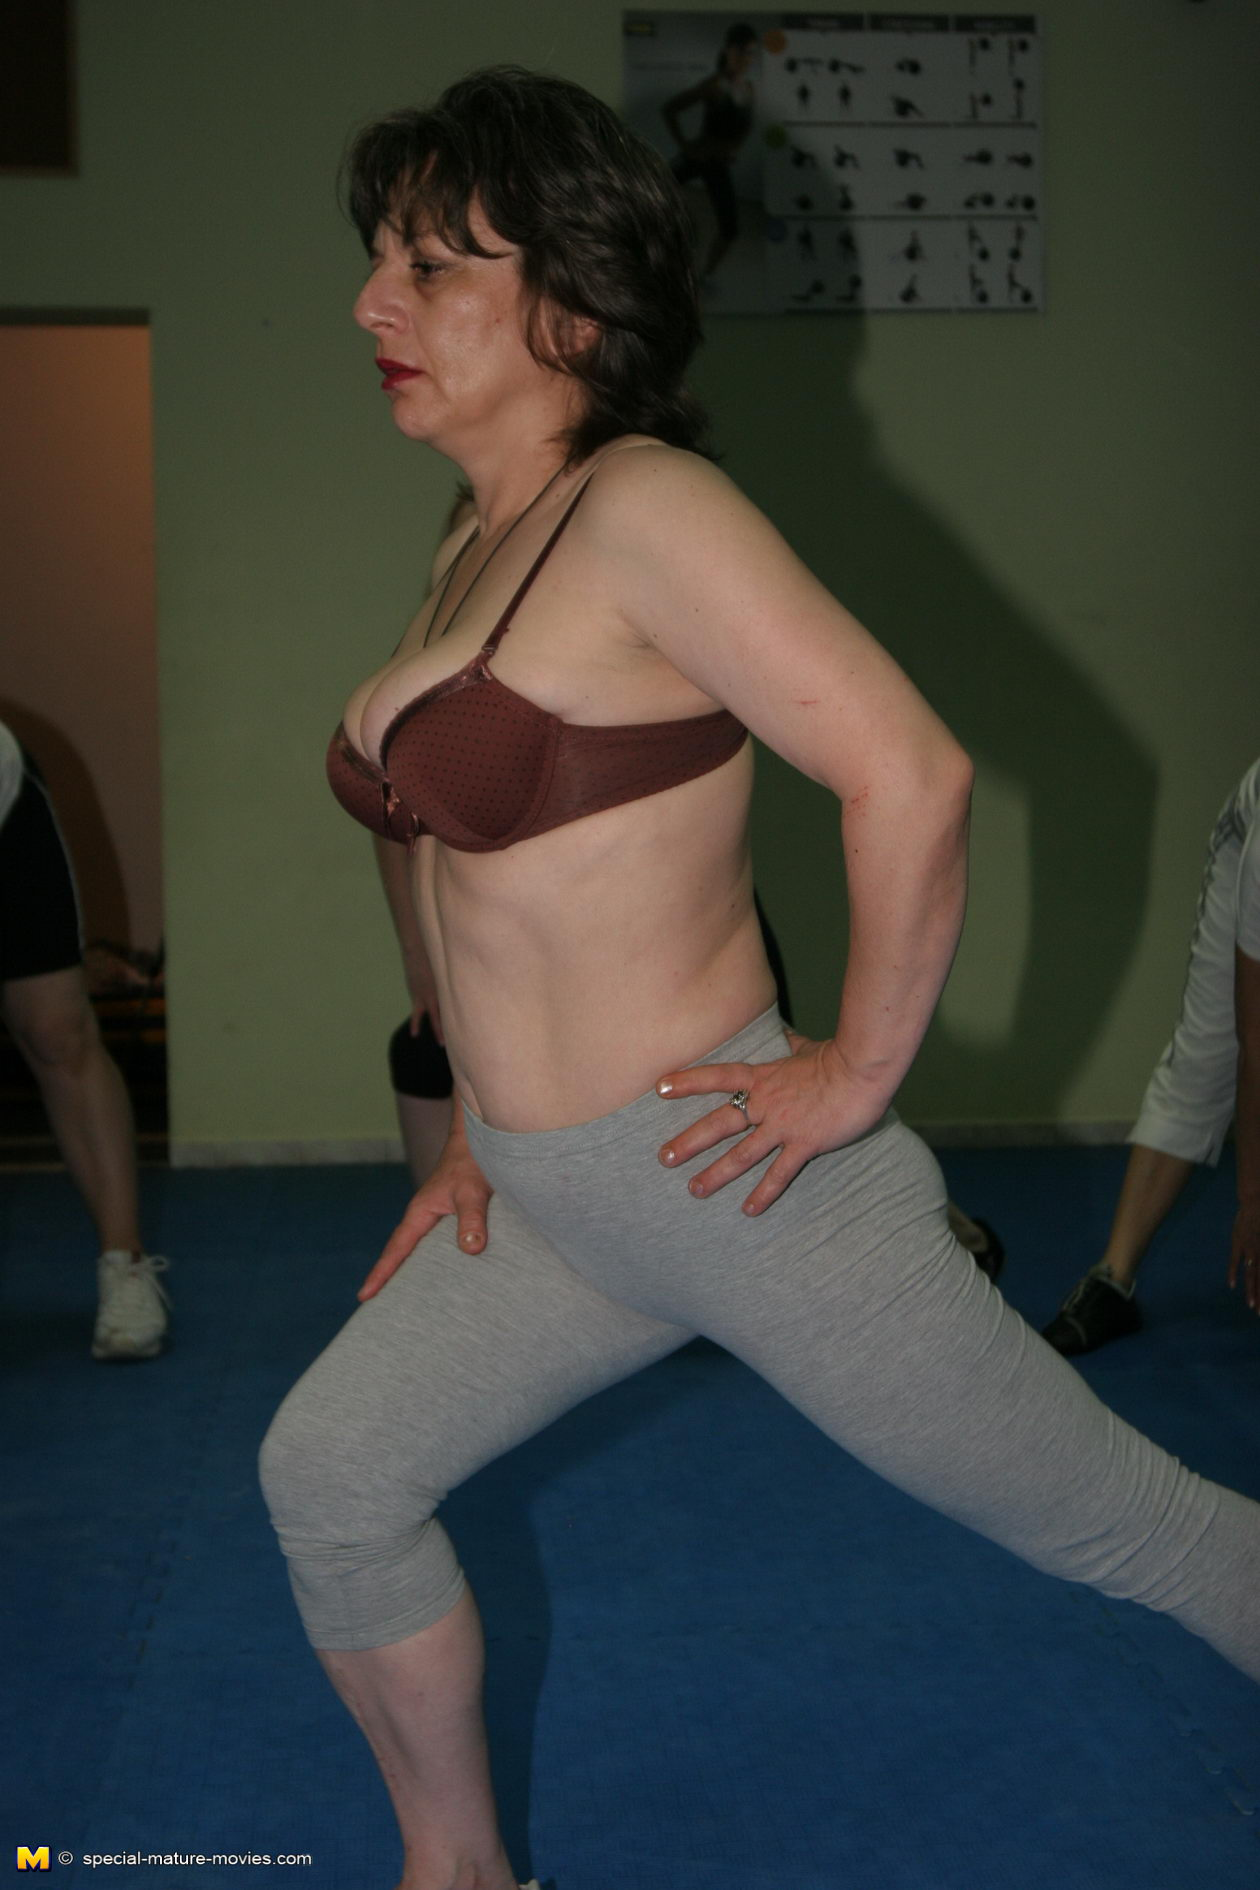 Mature Sex In Gym 50